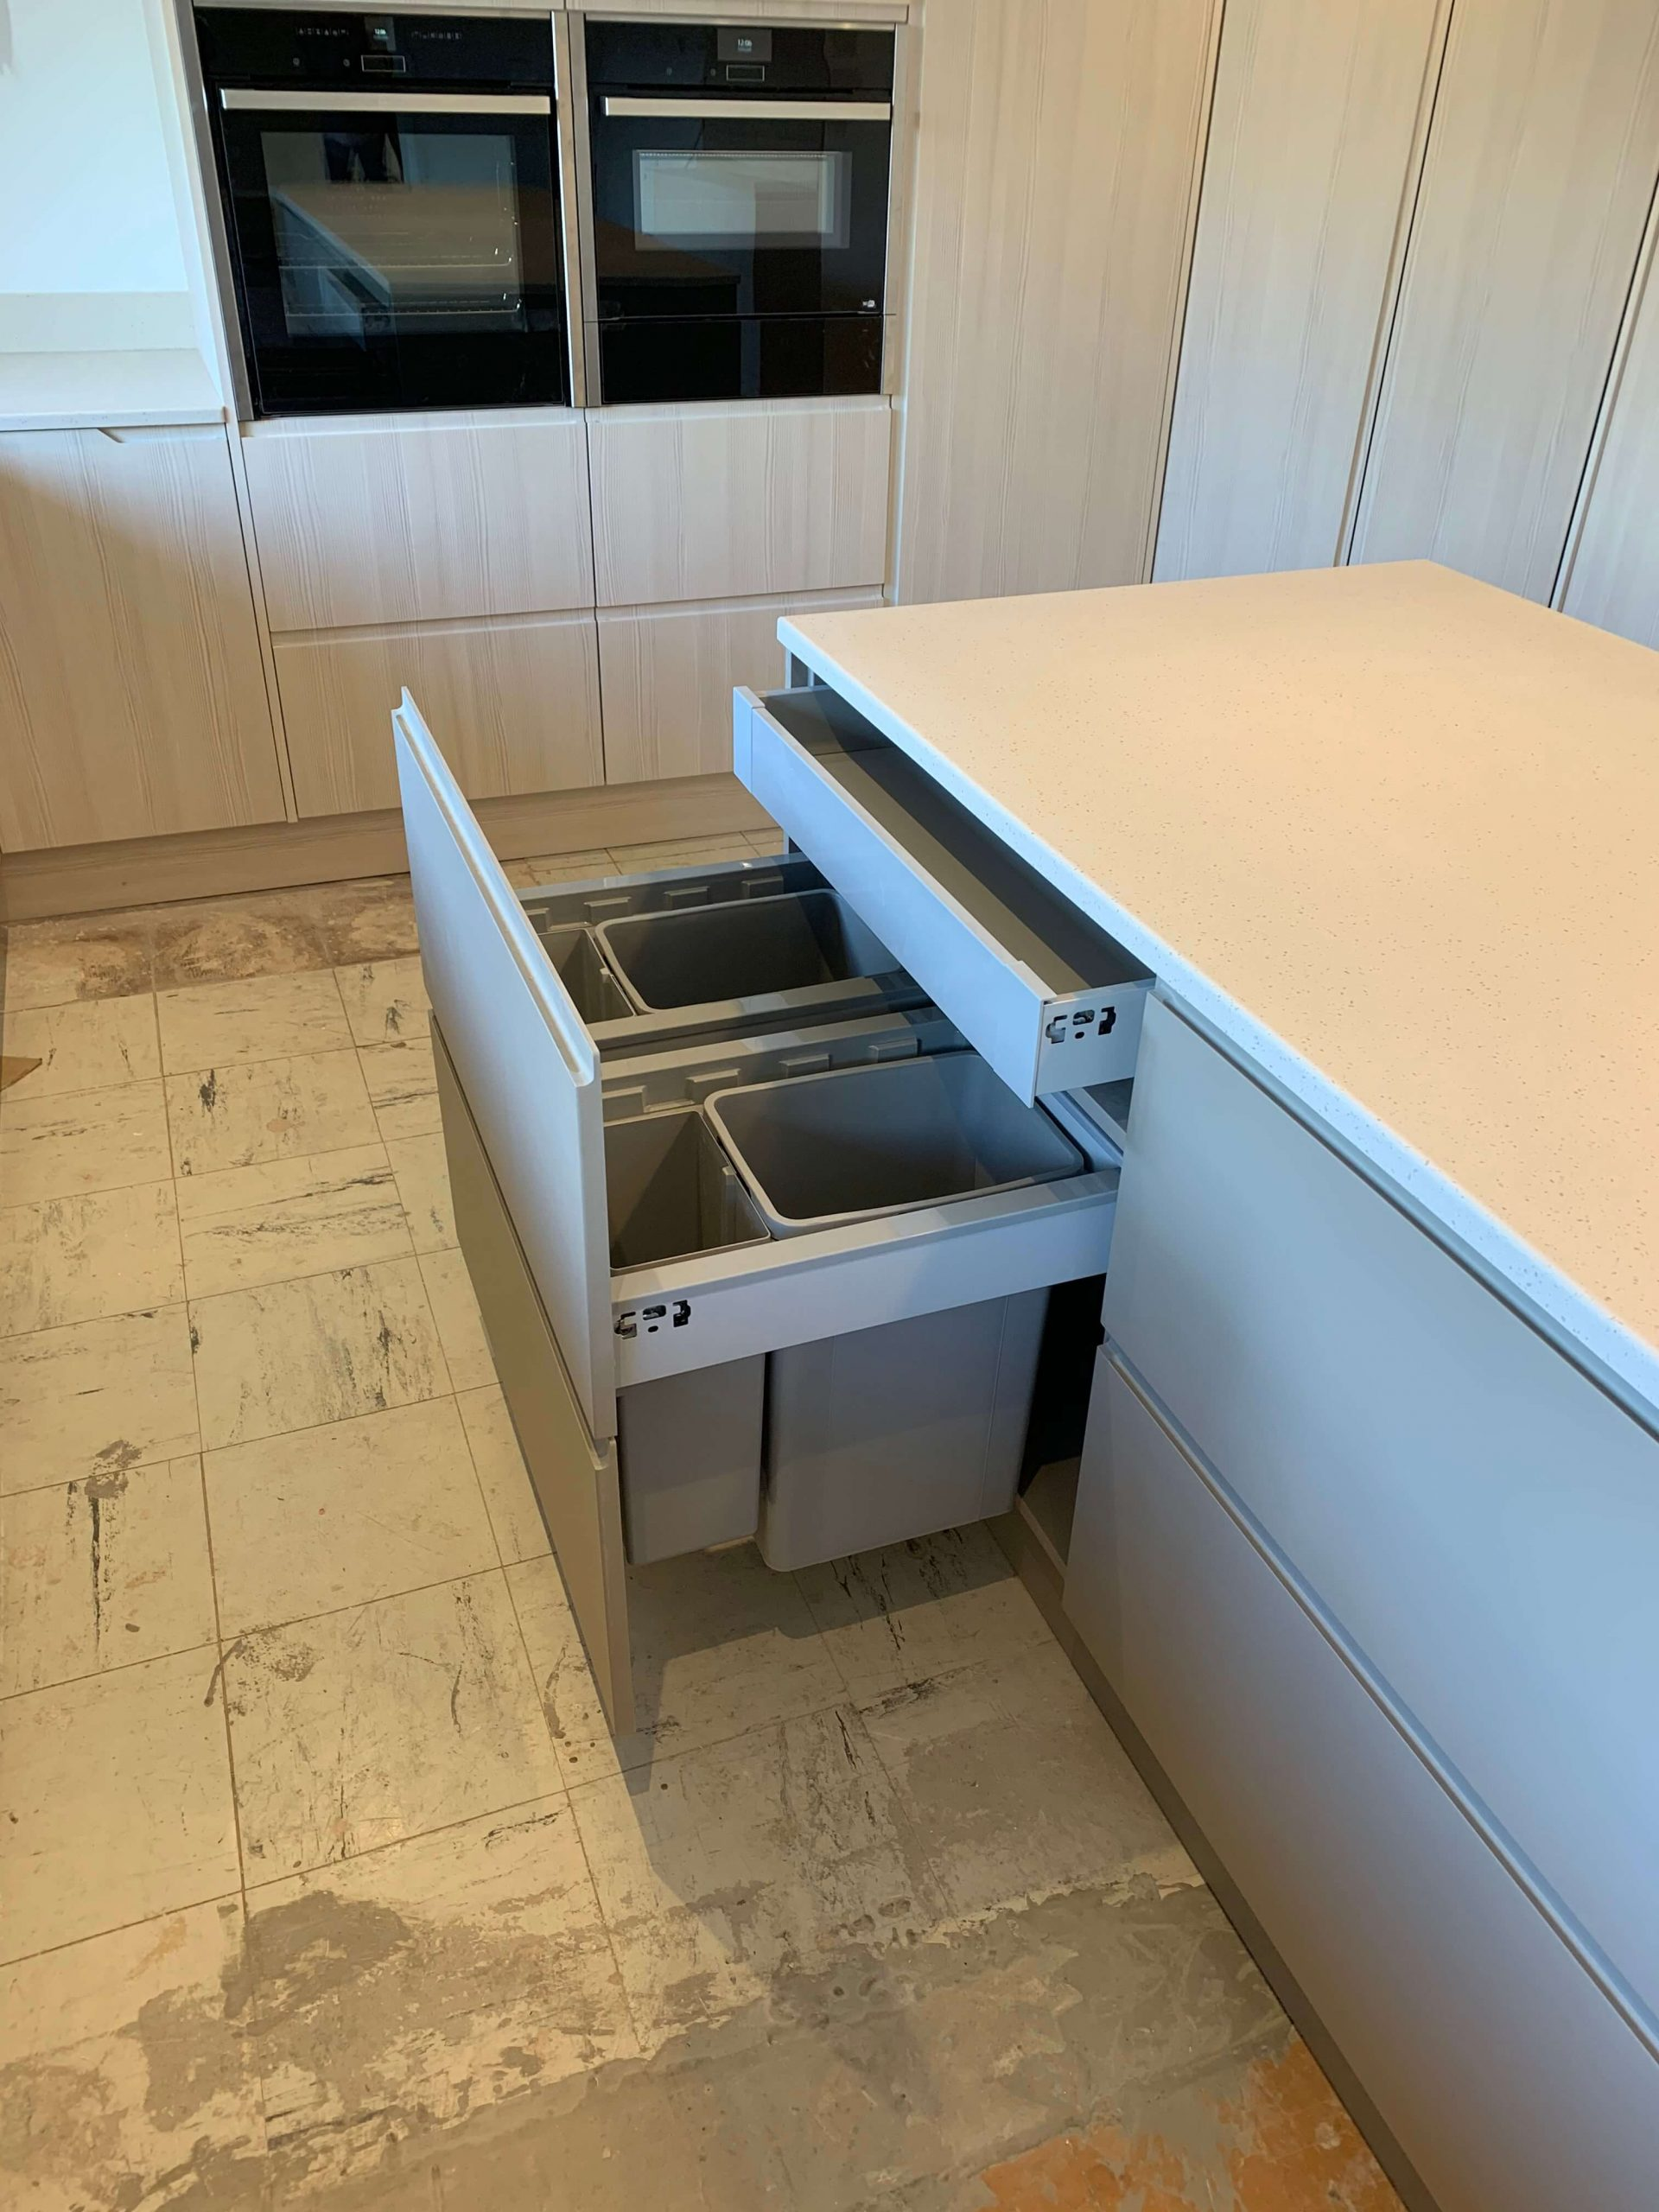 Twin waste bins with secret drawer above